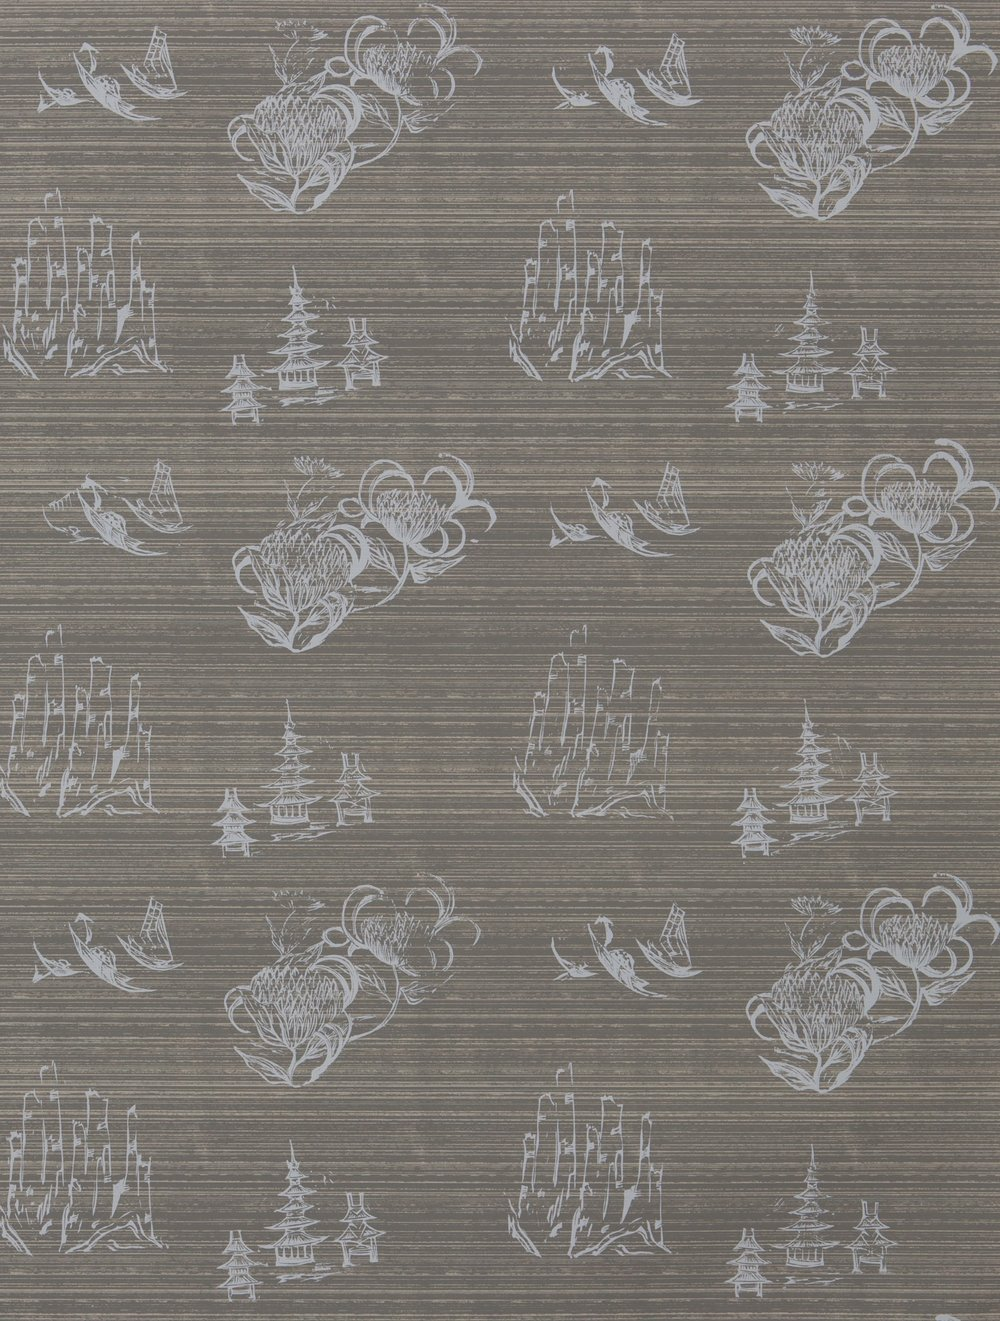 TOILE I FRENCH GREY